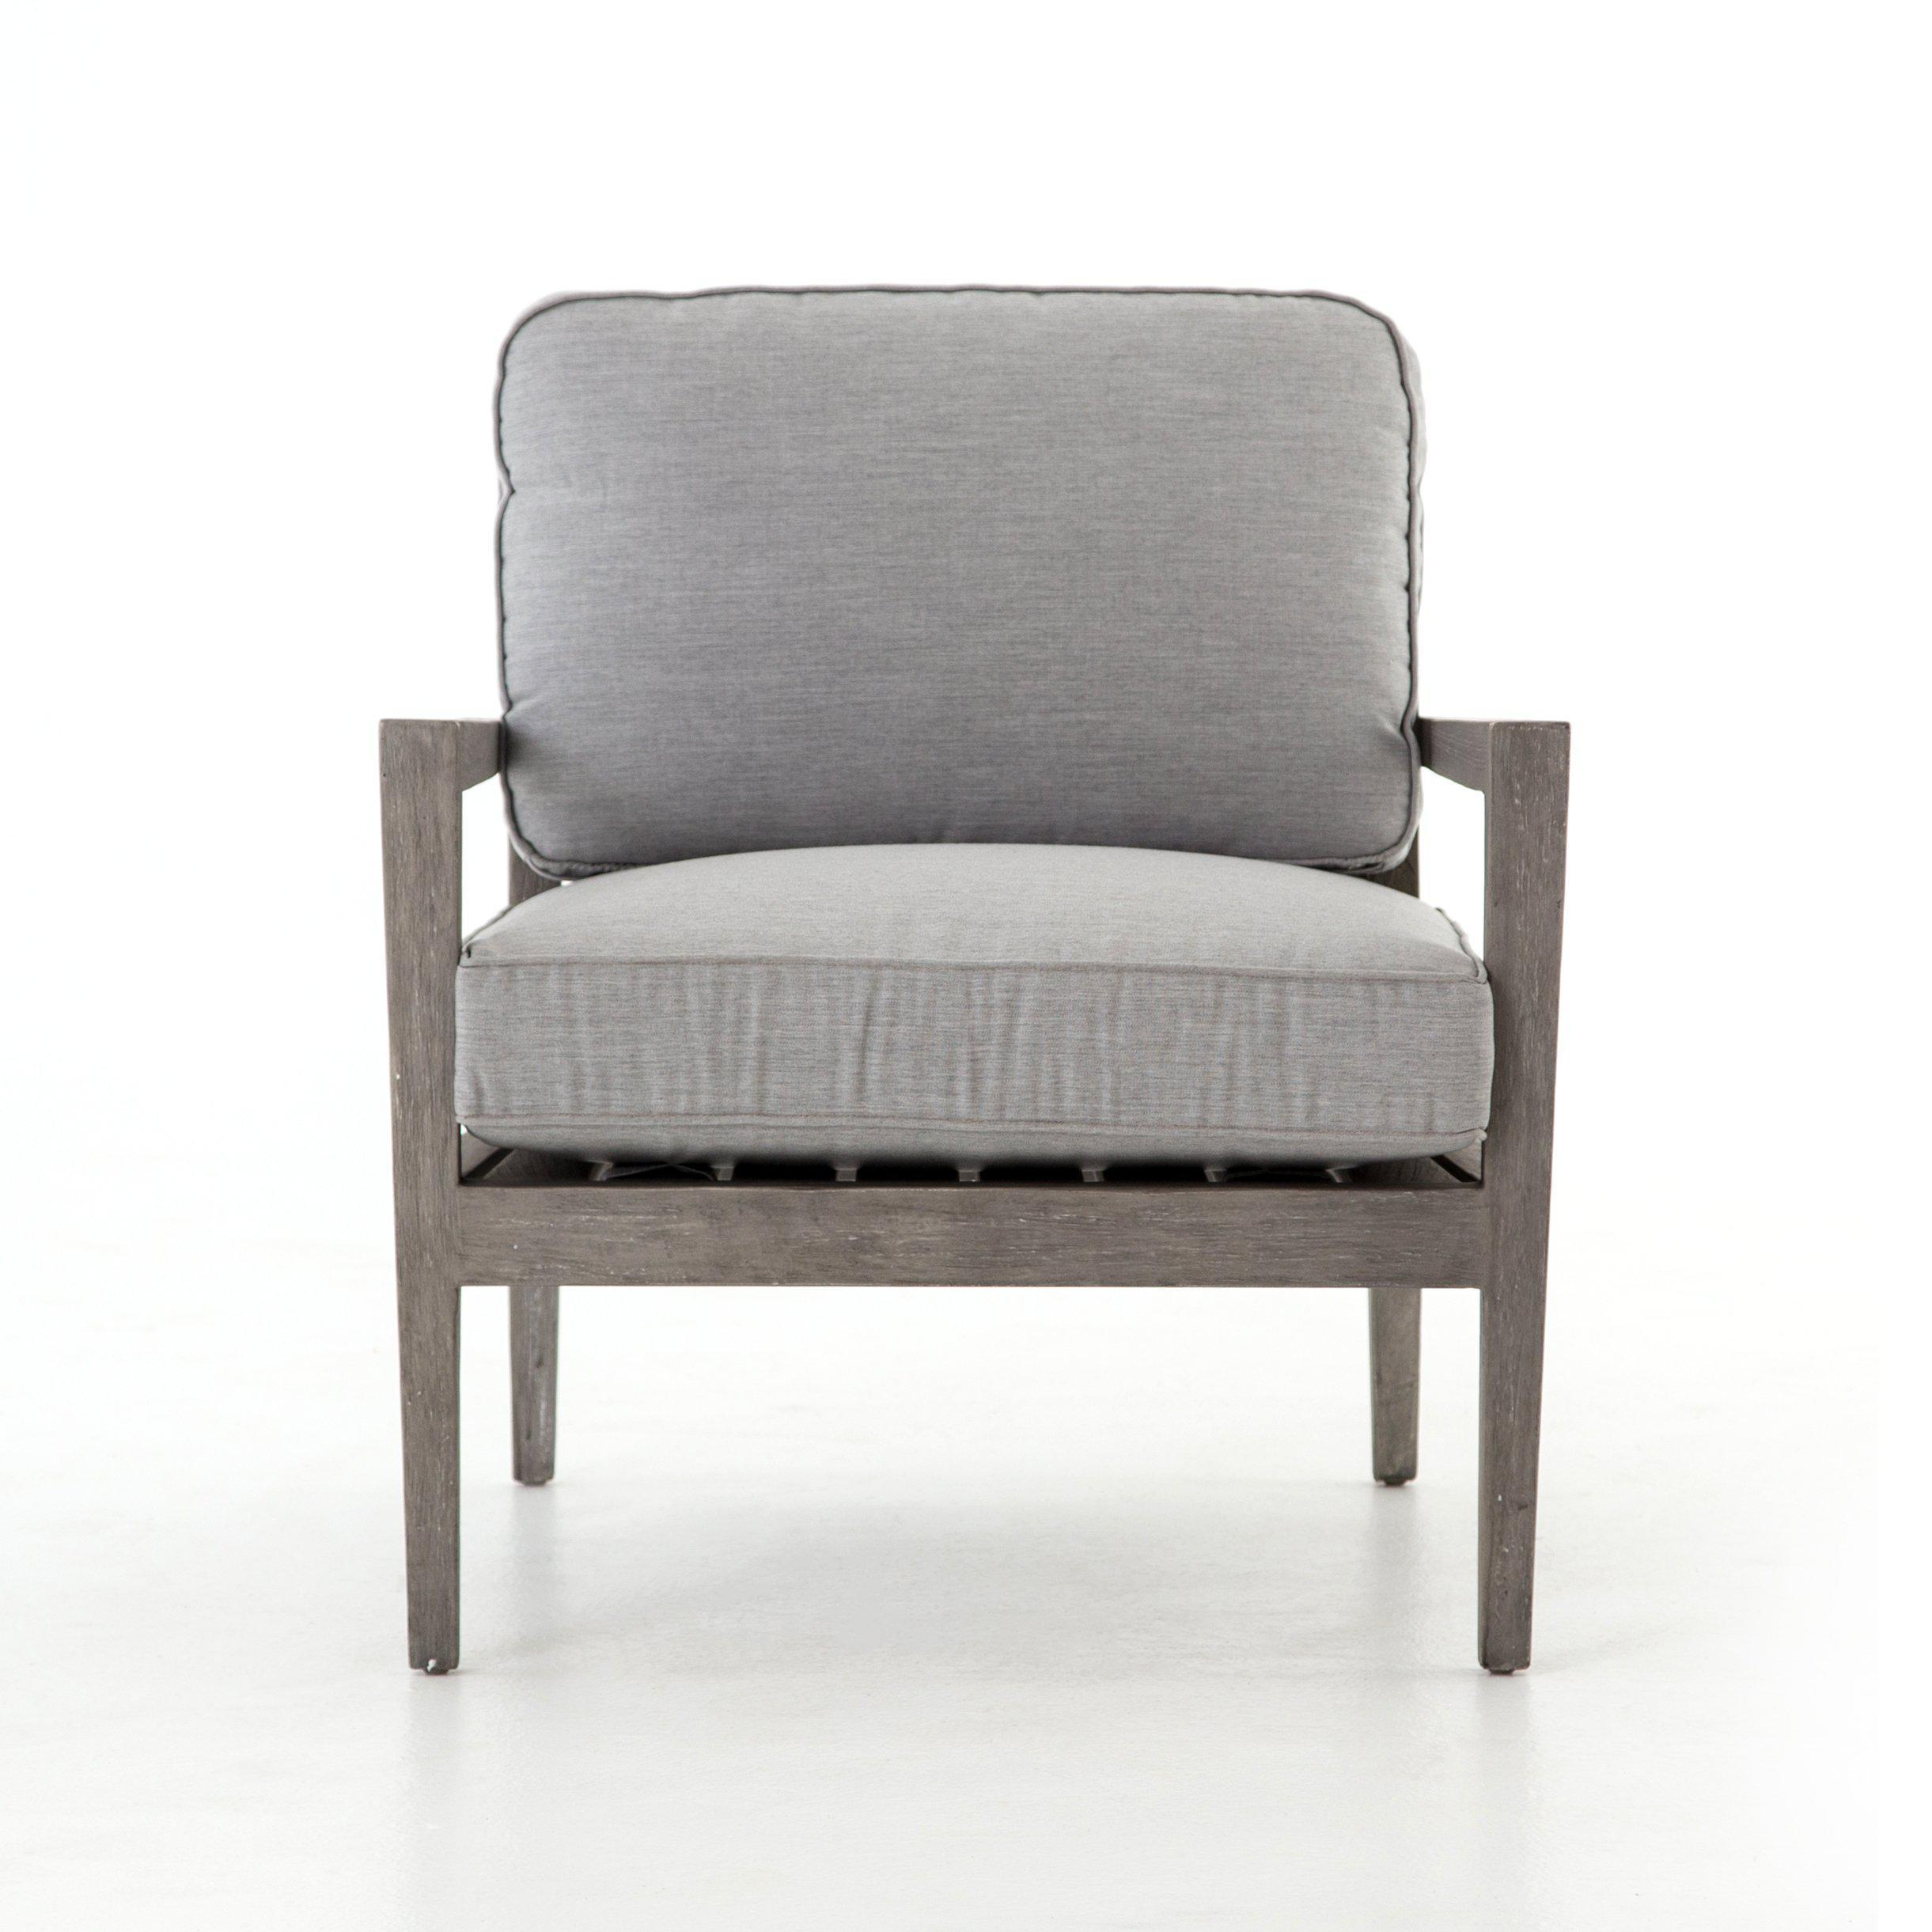 Riviera Outdoor Chair-Weathered Gry Teak-FURNITURE-Maker & Moss